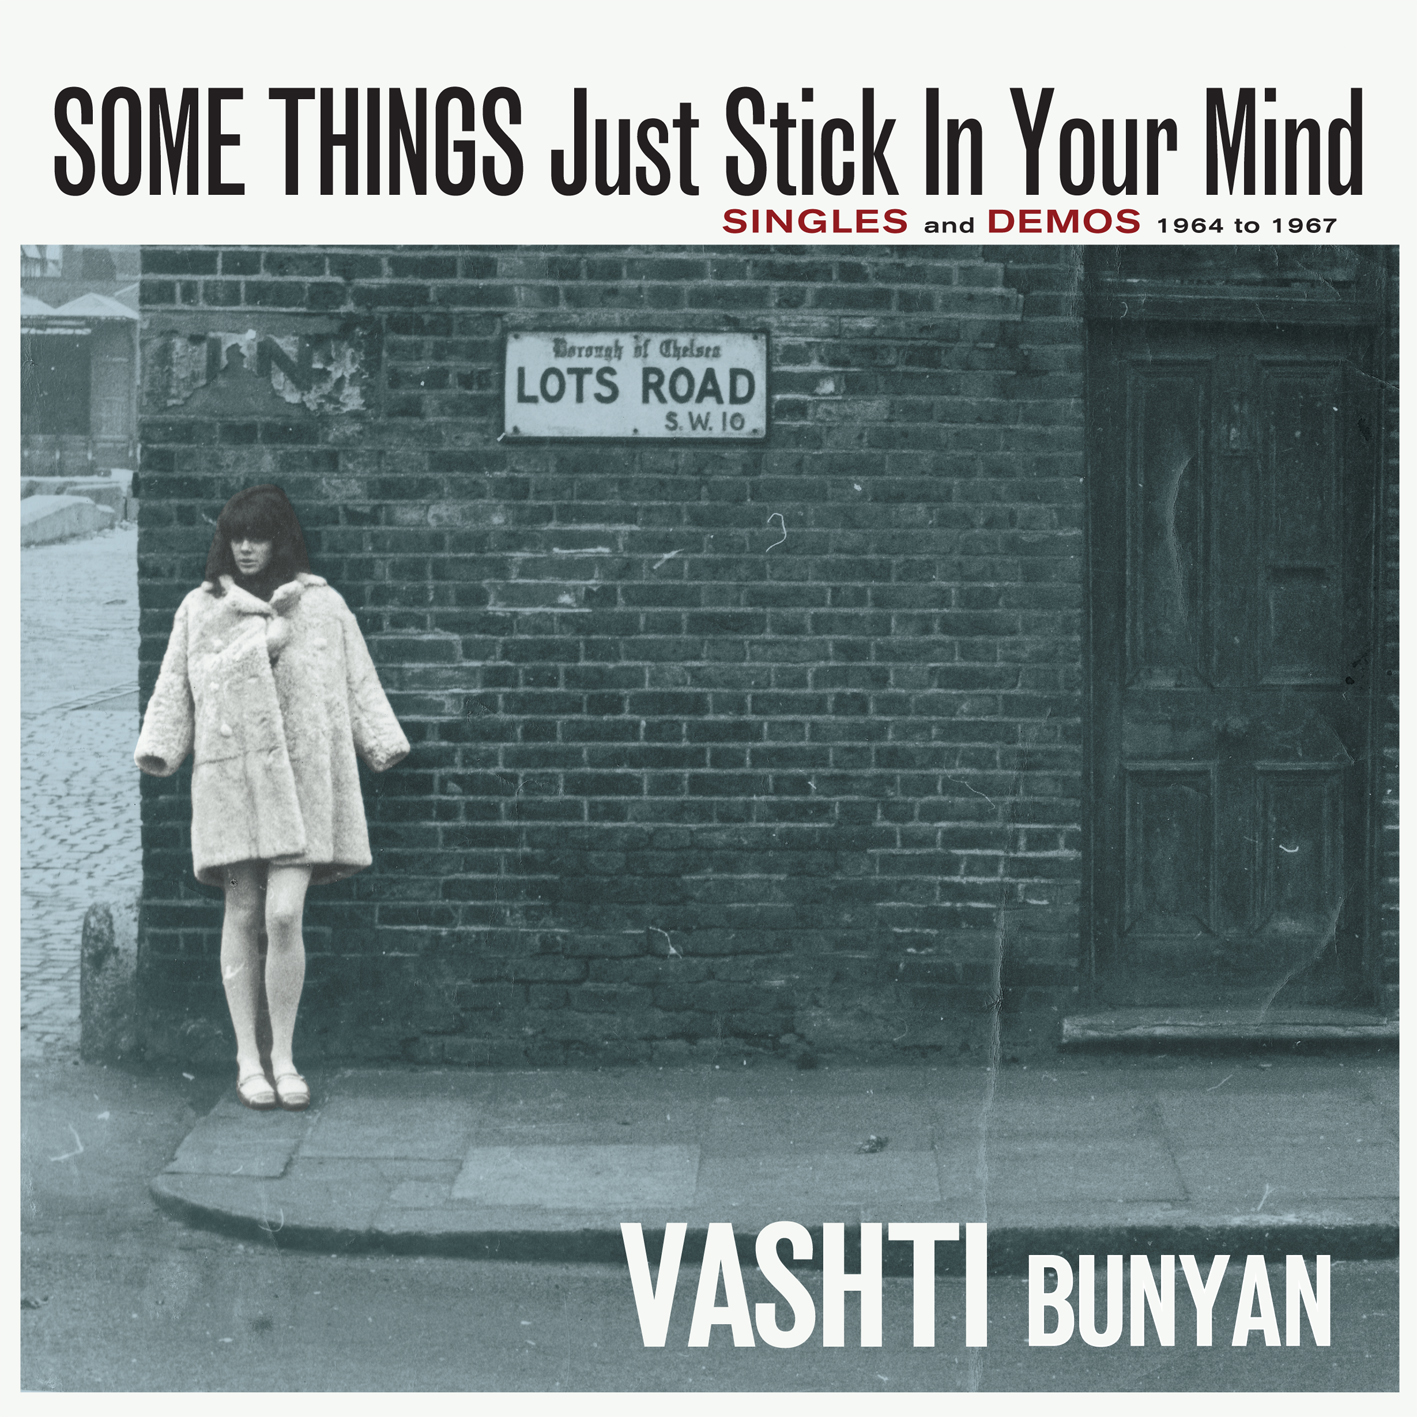 Some Things Just Stick In Your Mind (Album)